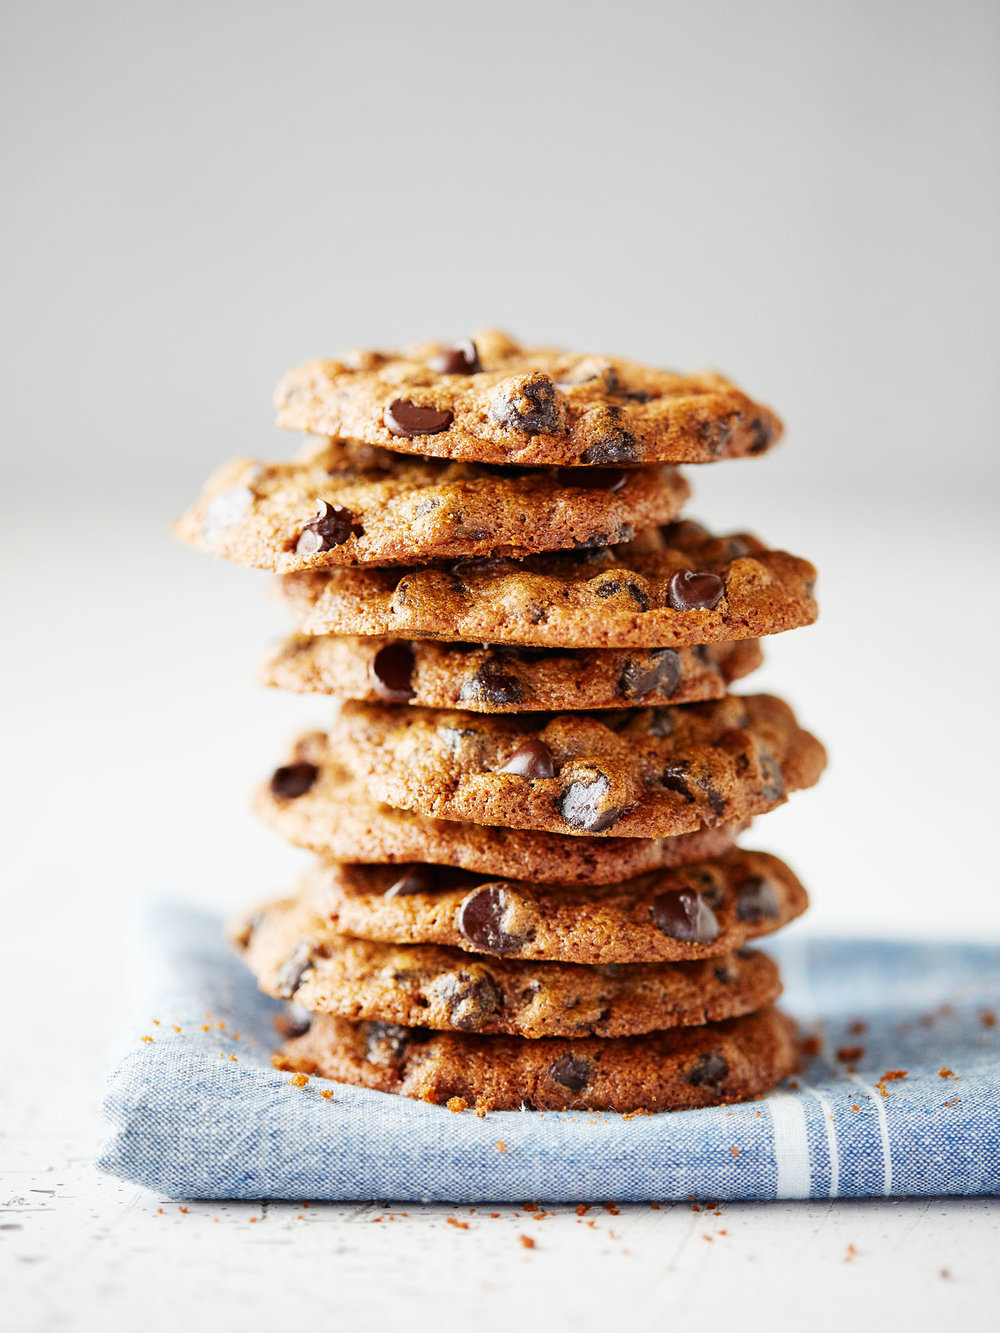 20150915_Tia_Desserts_ChocolateChipCookies_027.jpg